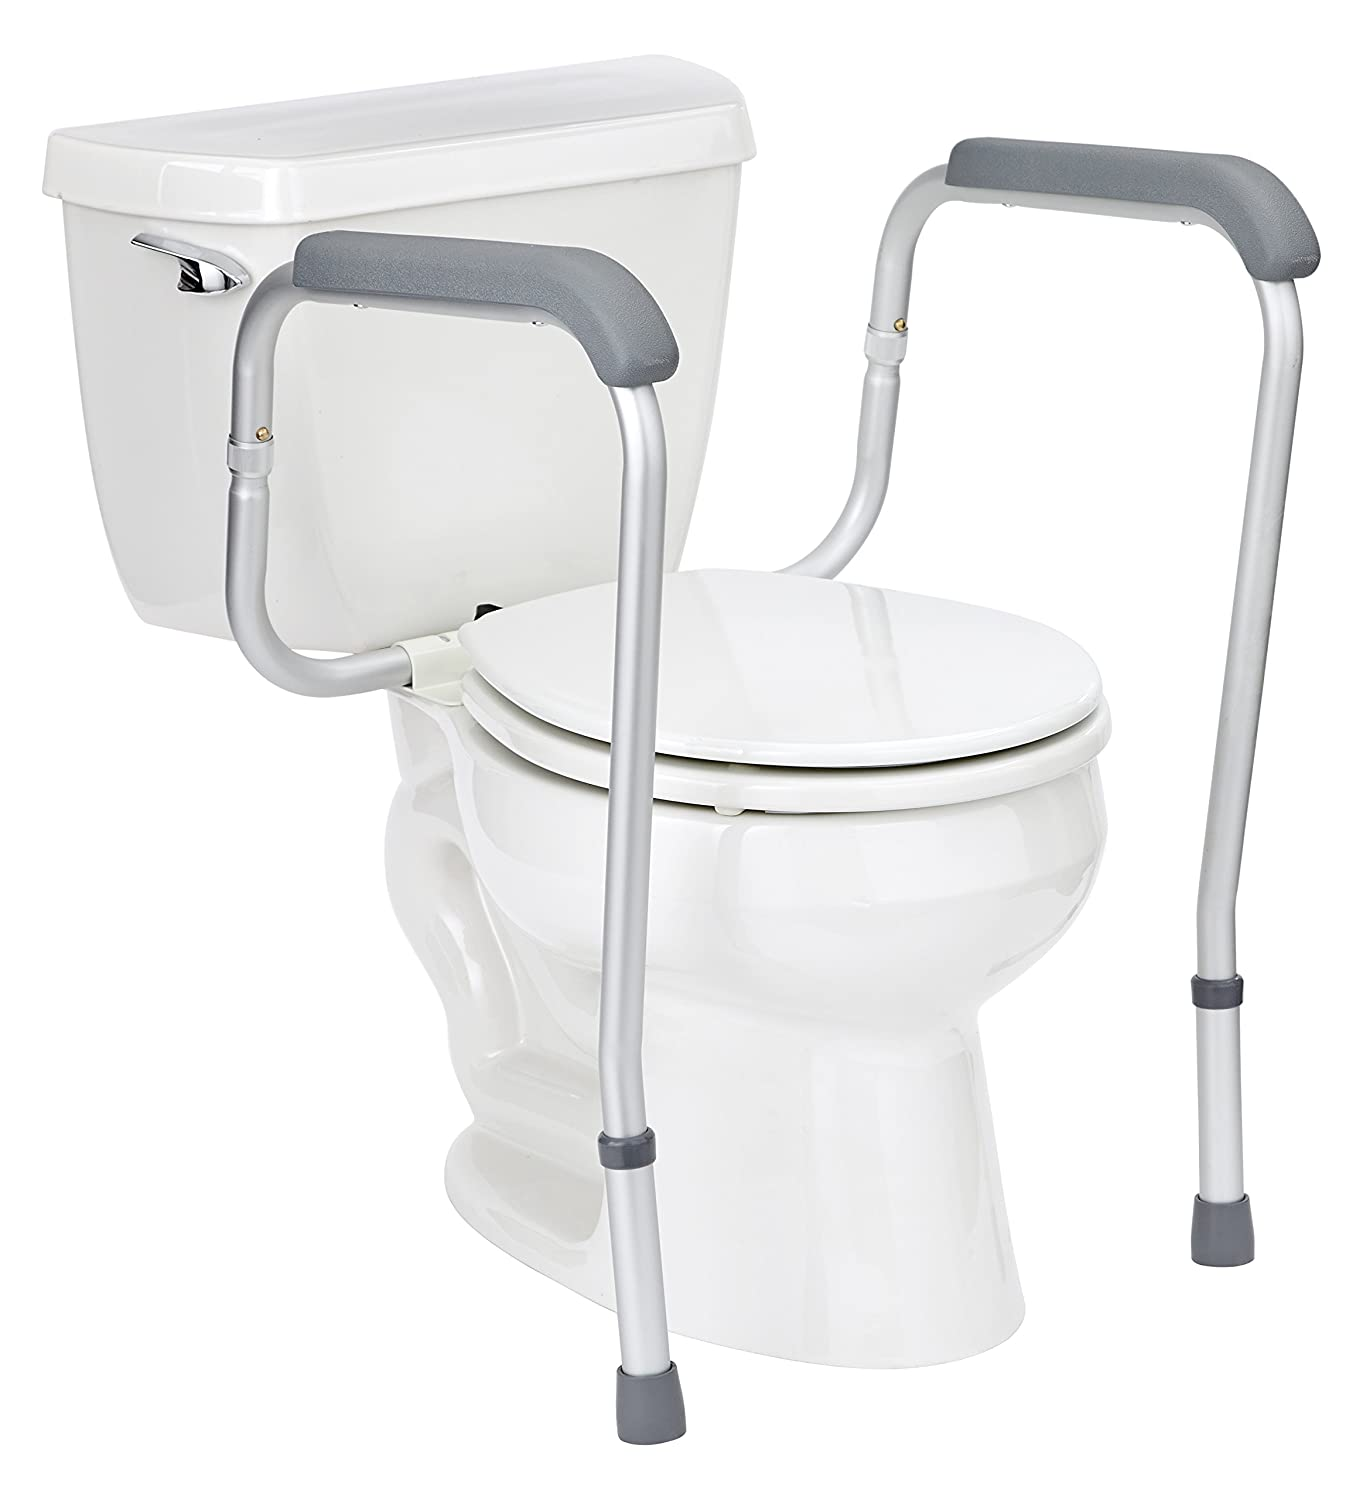 Amazon.com: Medline Toilet Safety Rails, Safety Frame for Toilet ...